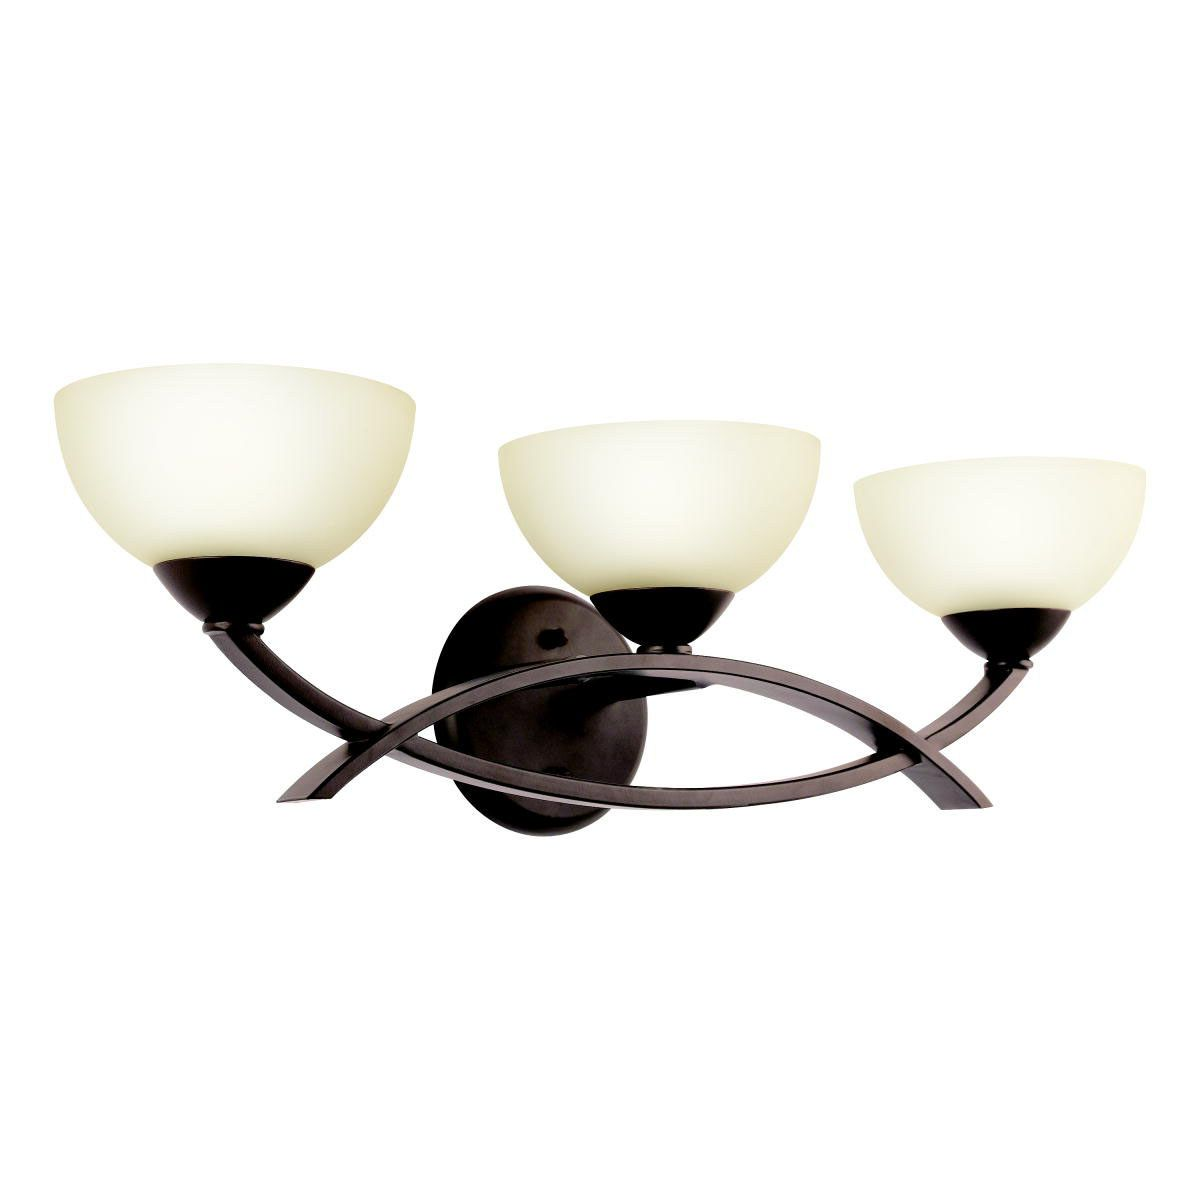 Both sleek and contemporary and warm and classic, the transitional kichler bellamy collection features sweeping intersecting arms and classic bowl shapes, in a silken olde bronze finish and glowing umber-etched glass. It can be hung with the glass up or down and when installed with the glass up it rises 4.75 inches above the center of the wall opening. It uses a 60w max krypton bulb . It is ul listed for damp locations.